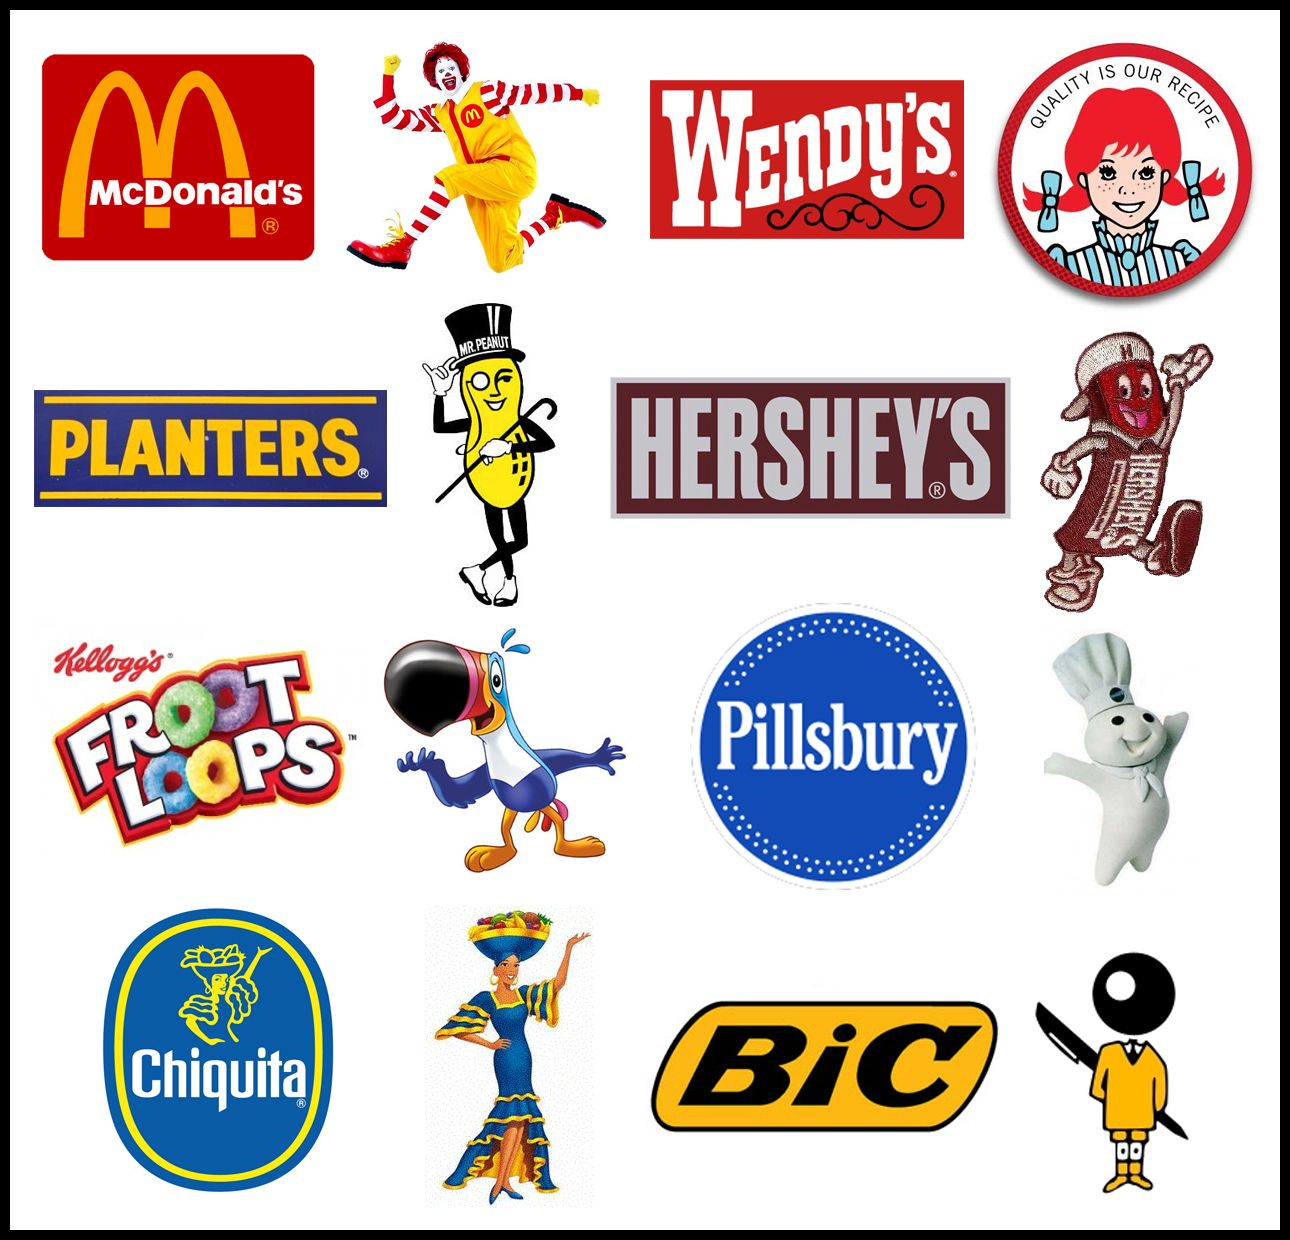 Why Corporate Mascots are so important. Brand identity